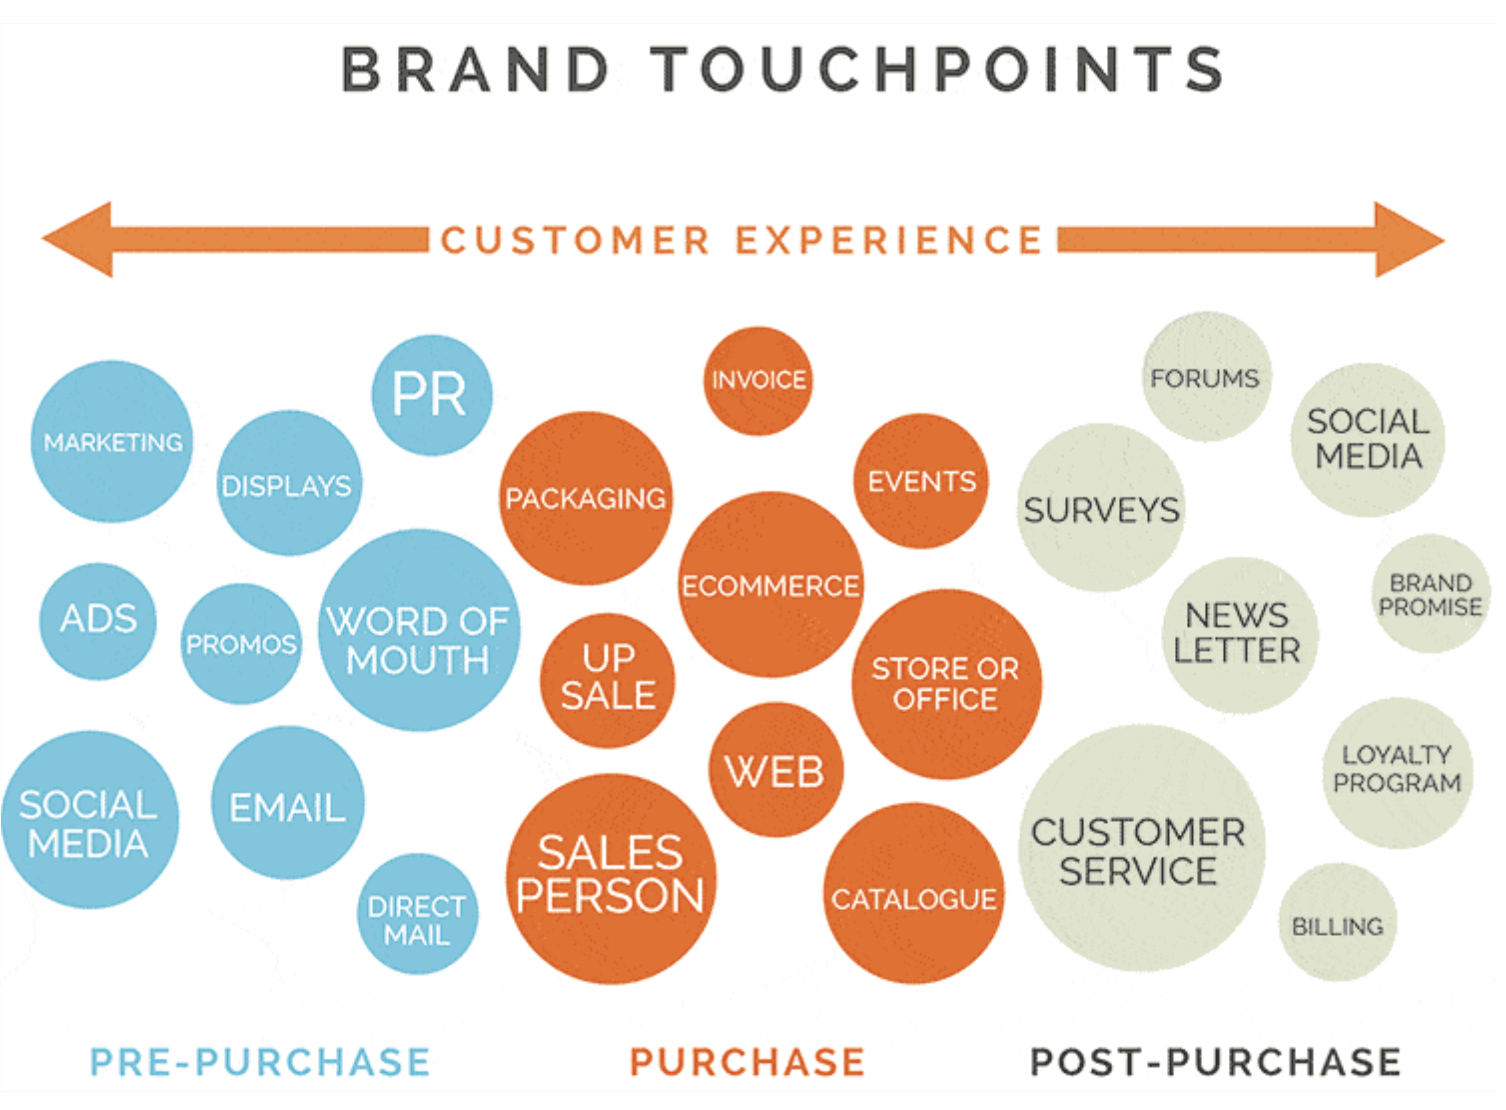 Customer Touch Points branded